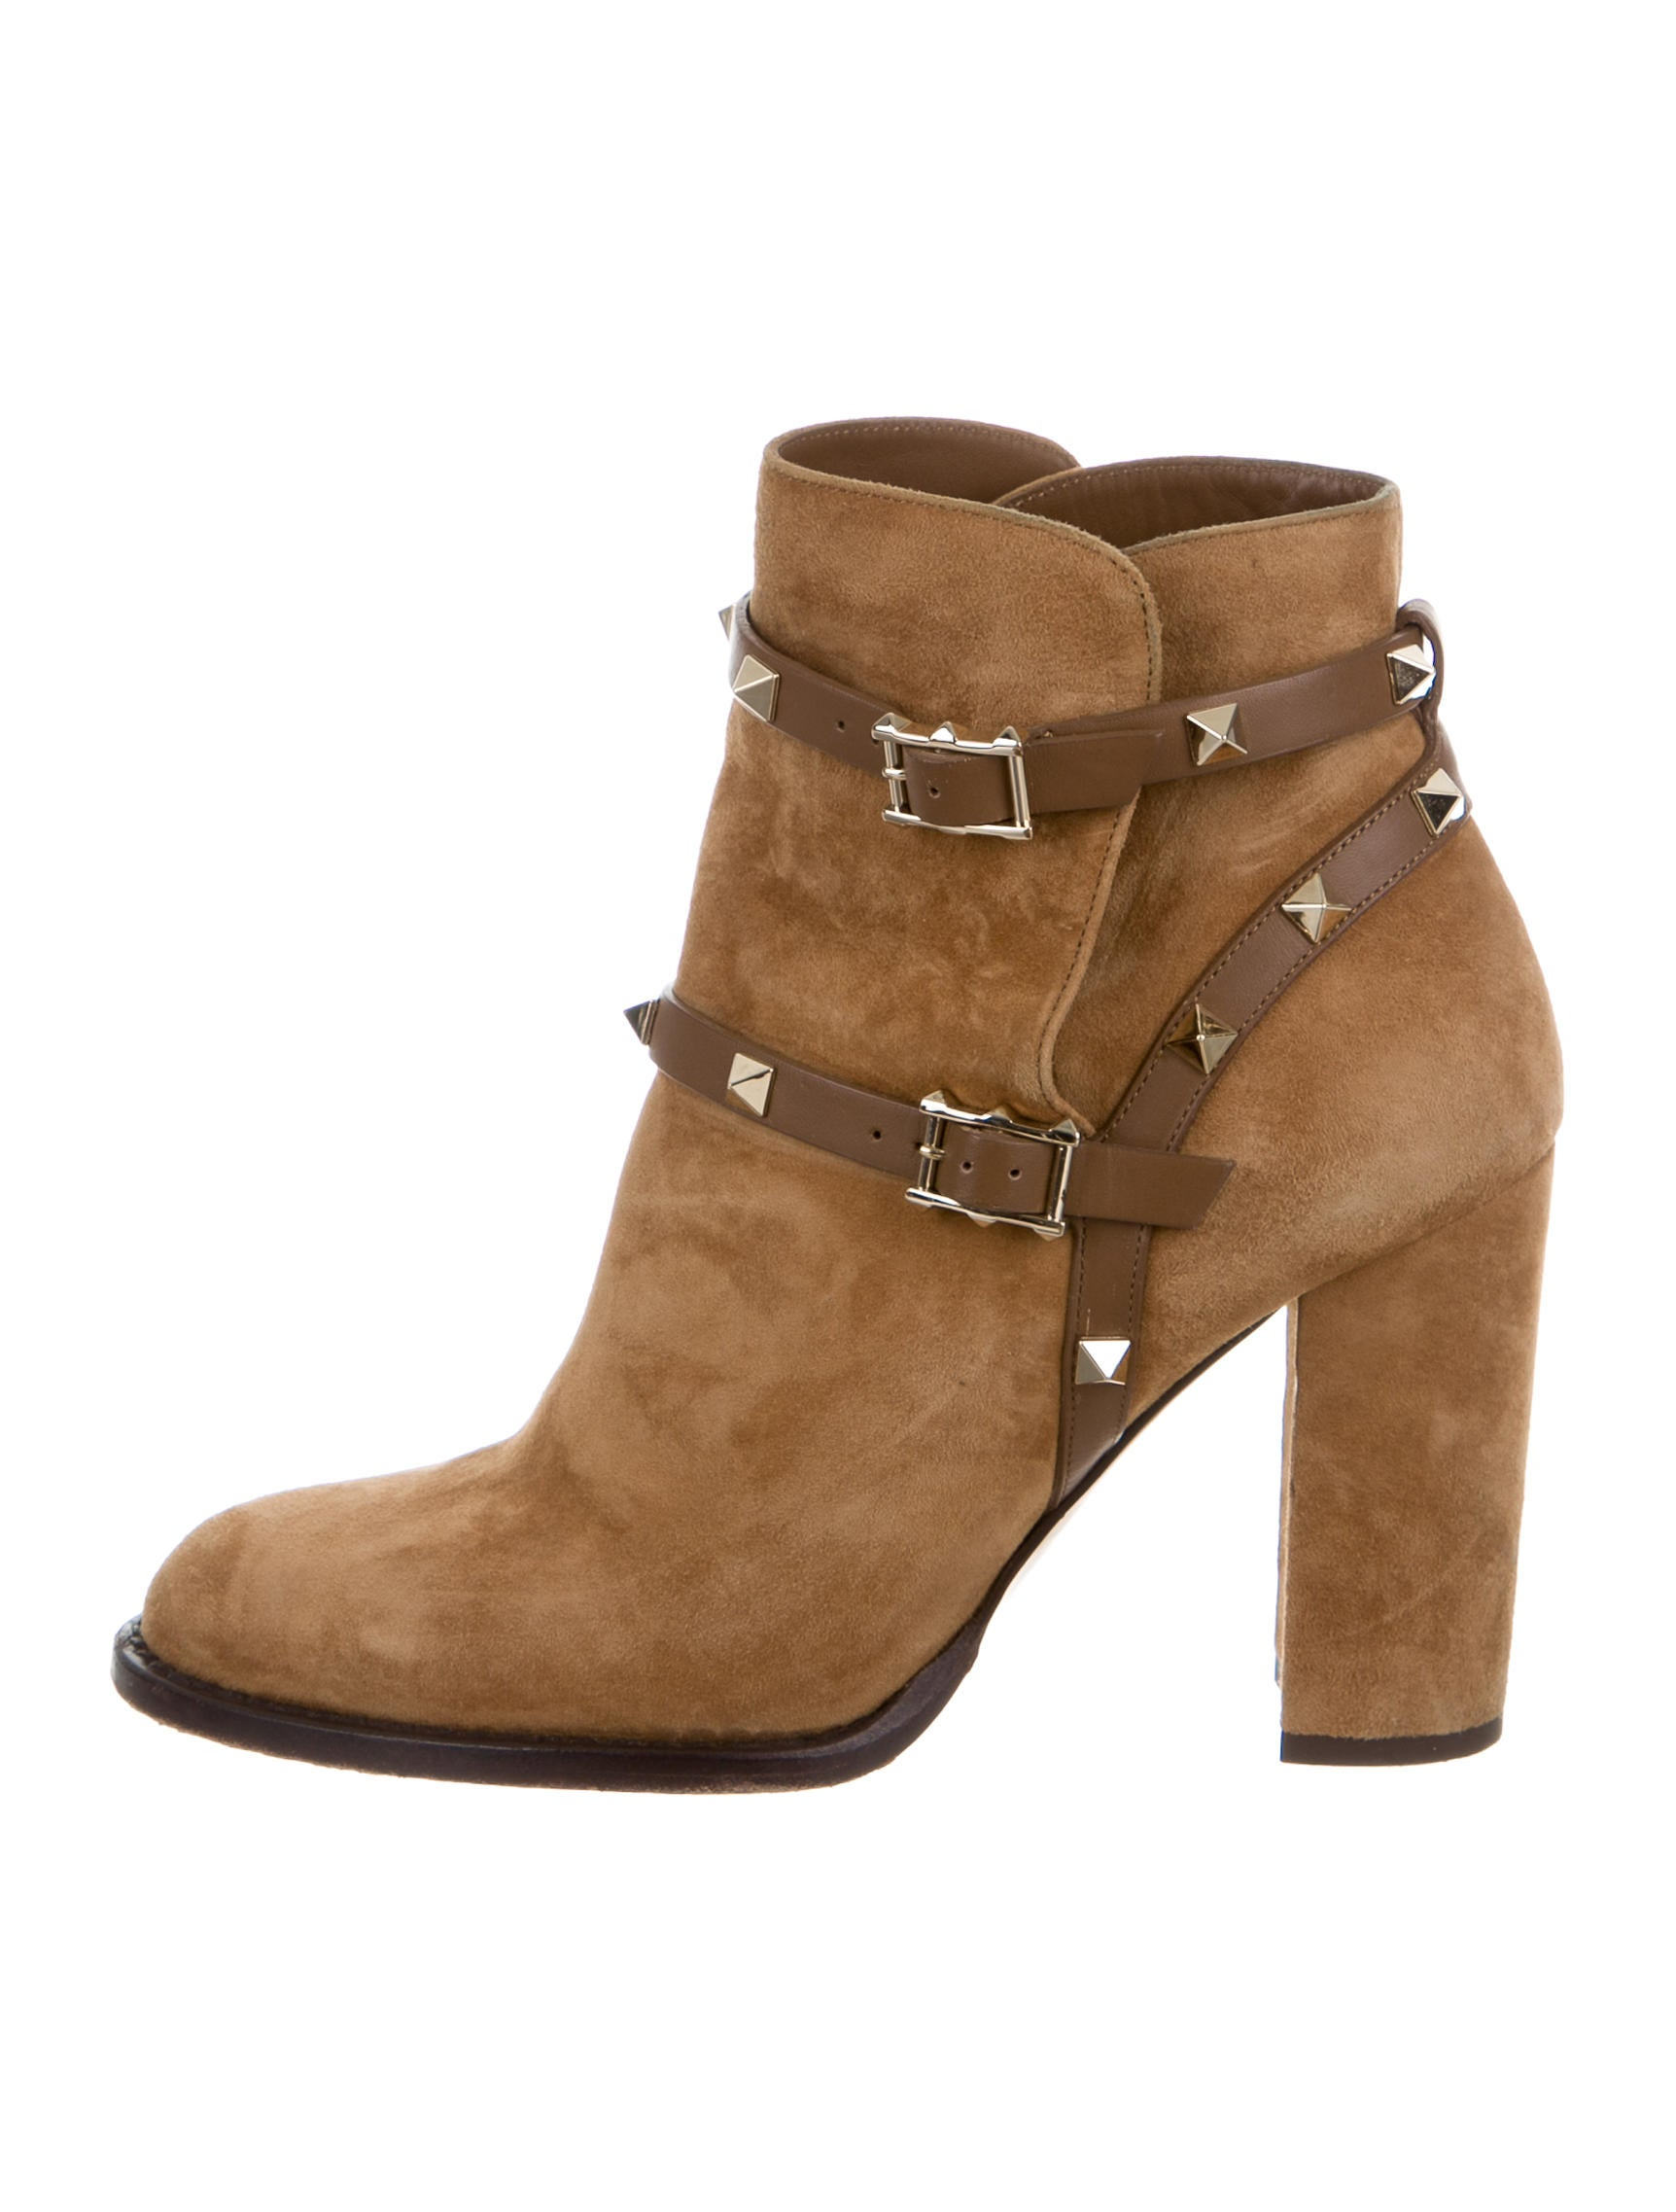 Shop eBay for great deals on Suede Ankle Boots Solid Heels for Women. You'll find new or used products in Suede Ankle Boots Solid Heels for Women on eBay. Free shipping on selected items.